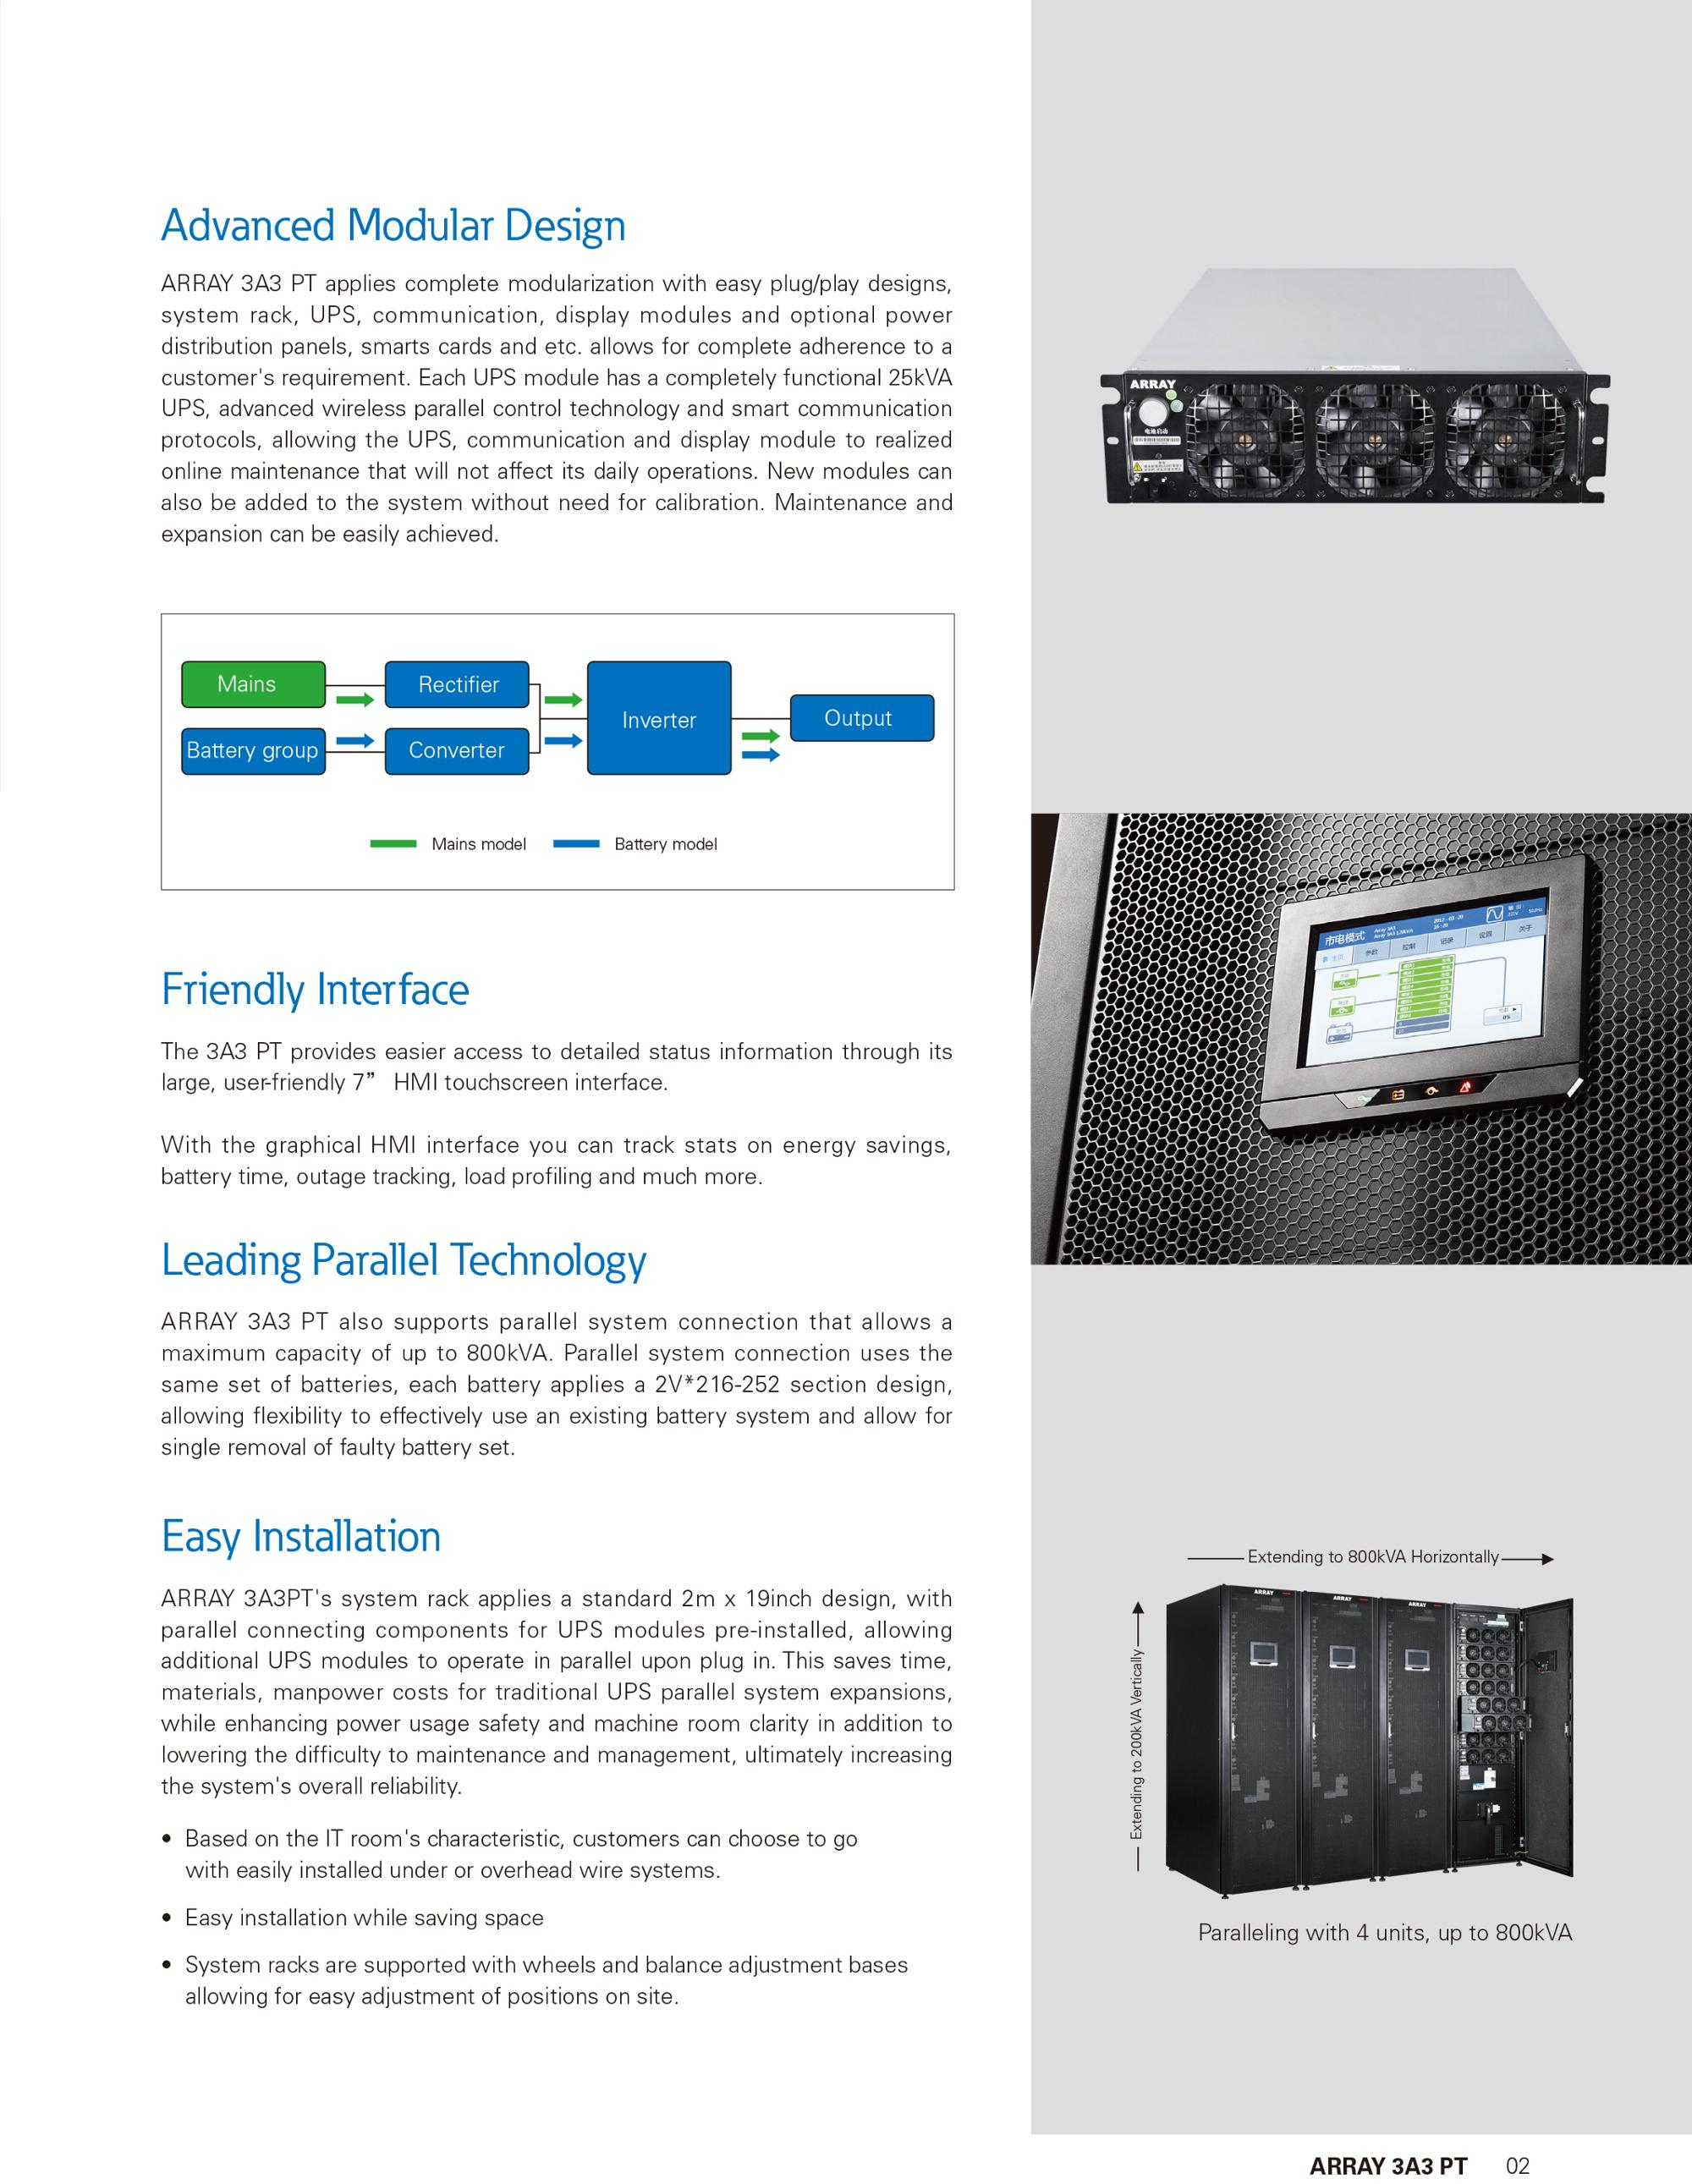 Uninterrupted Power Supply ARRAY Series 3A3 PT Modular UPS 75KVA Frame 25KVA Module SANTAK